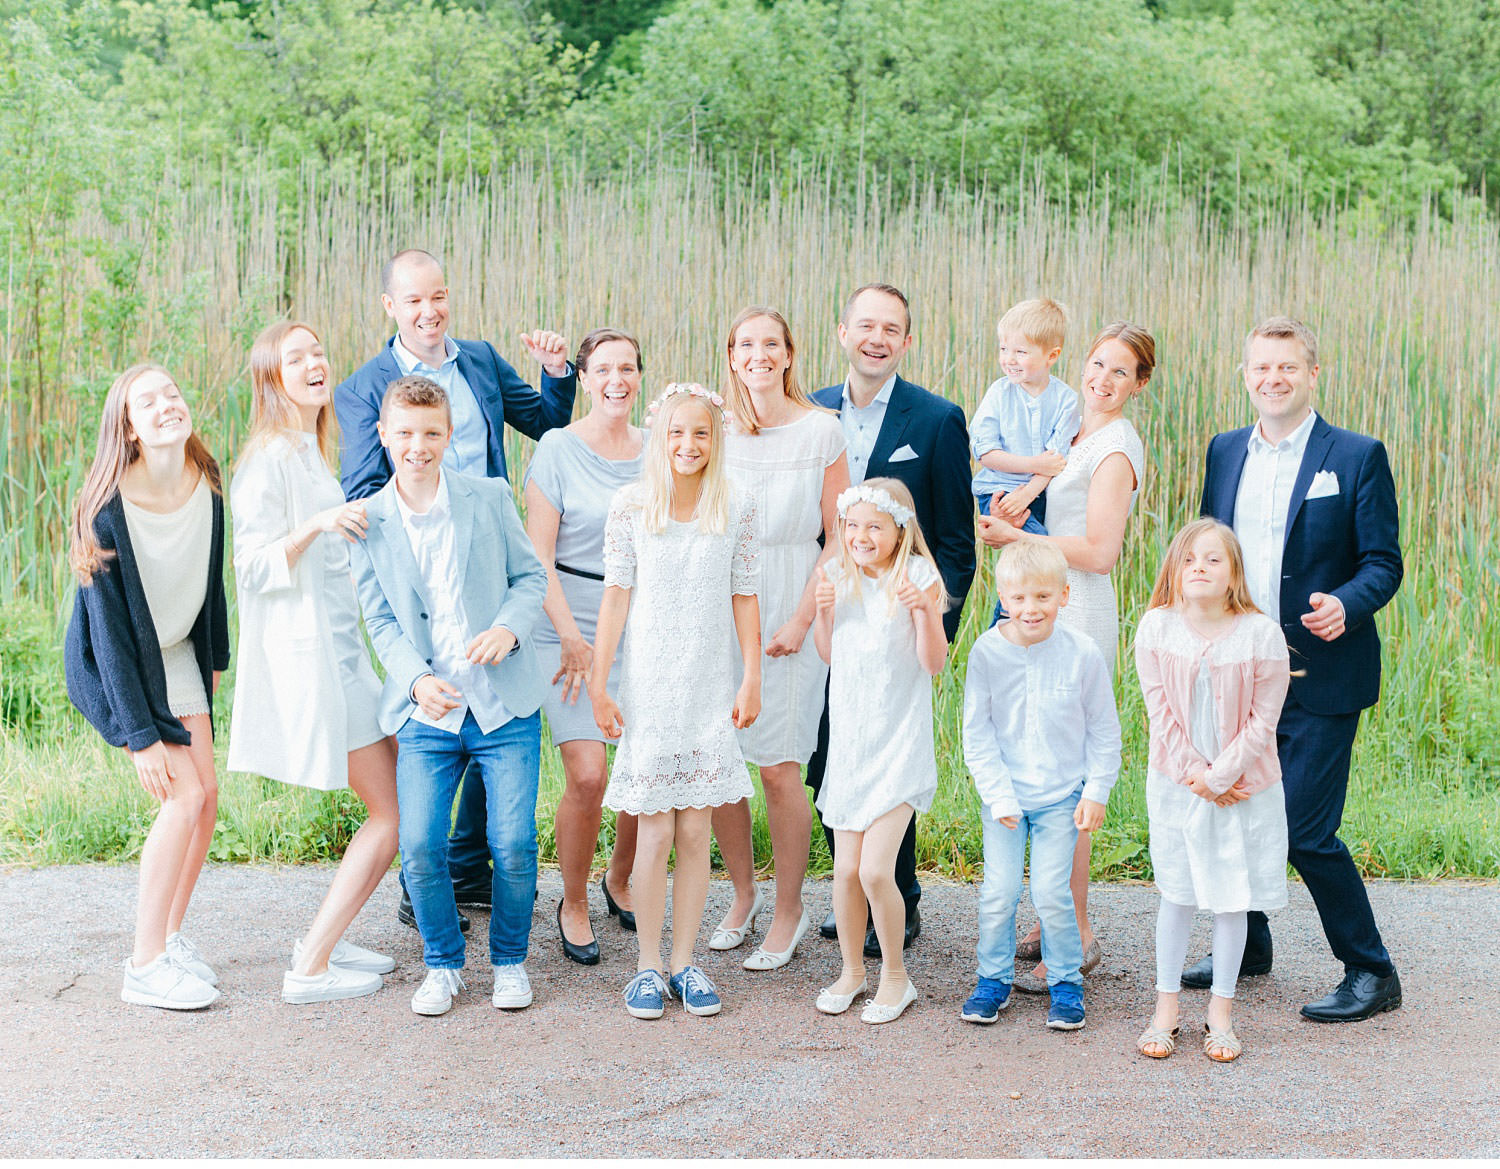 lena liljestr  m family 34 - 3 families, 1 big family portrait, family-session